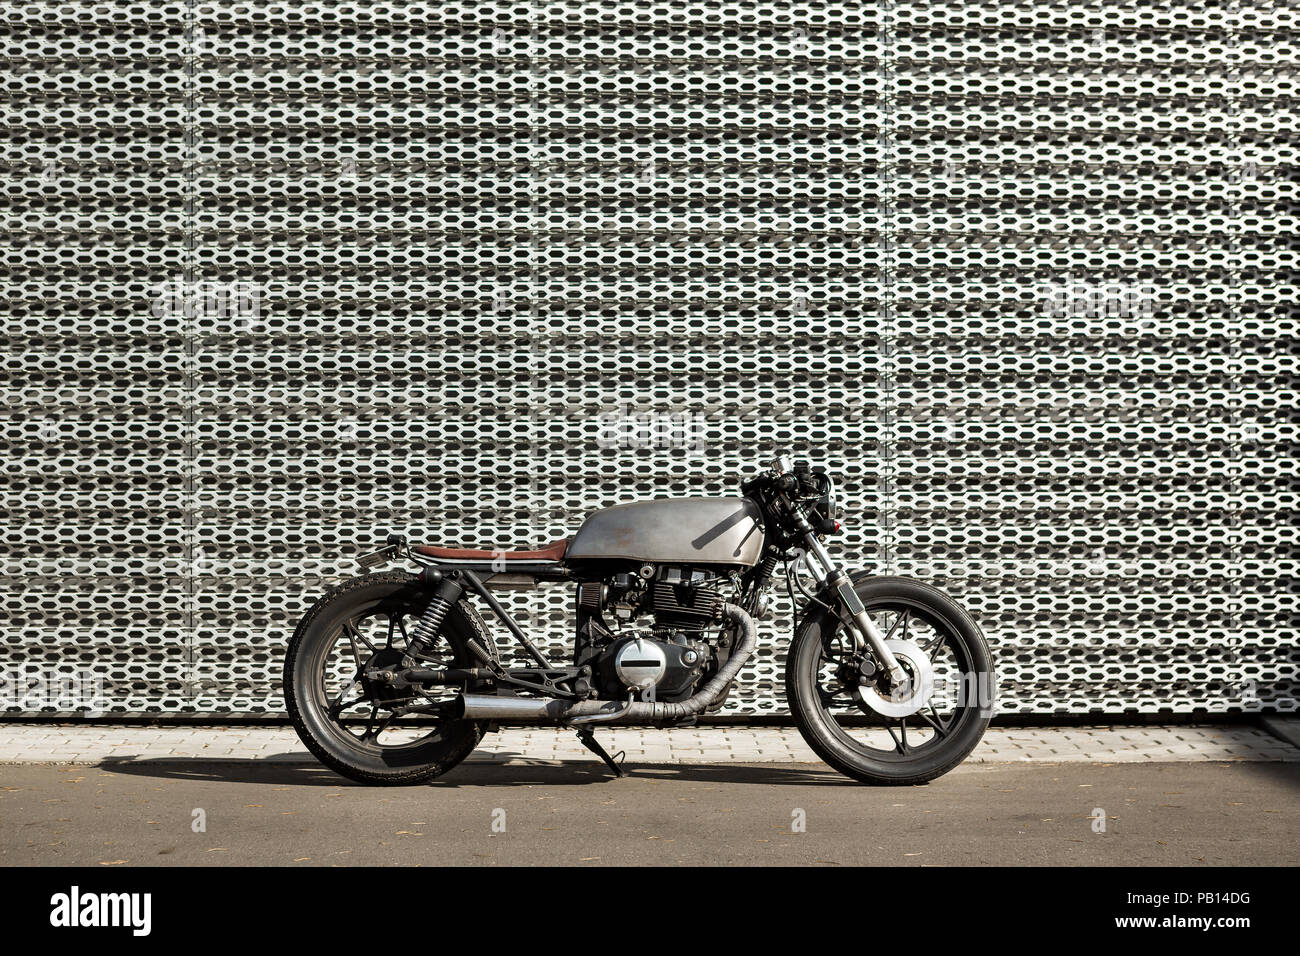 Custom motorcycle parking near wall of industrial building. Everything is ready for having fun driving the empty road on a motorcycle tour journey. Mo - Stock Image